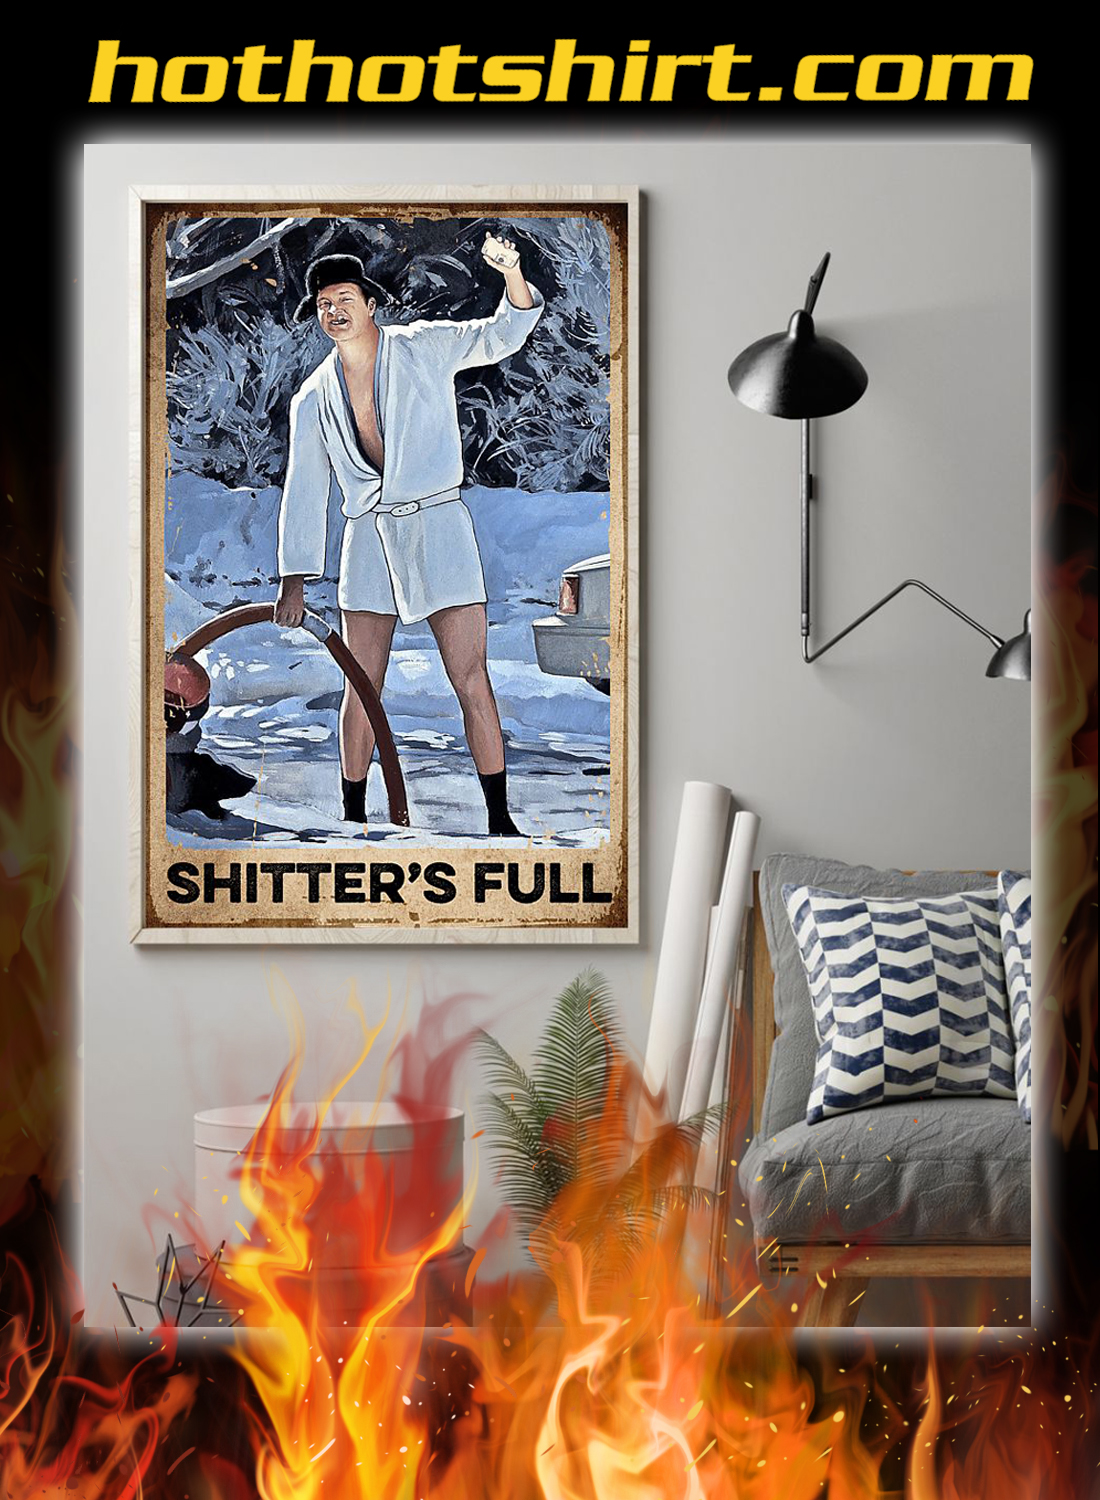 Shitter's full christmas vacation poster 1